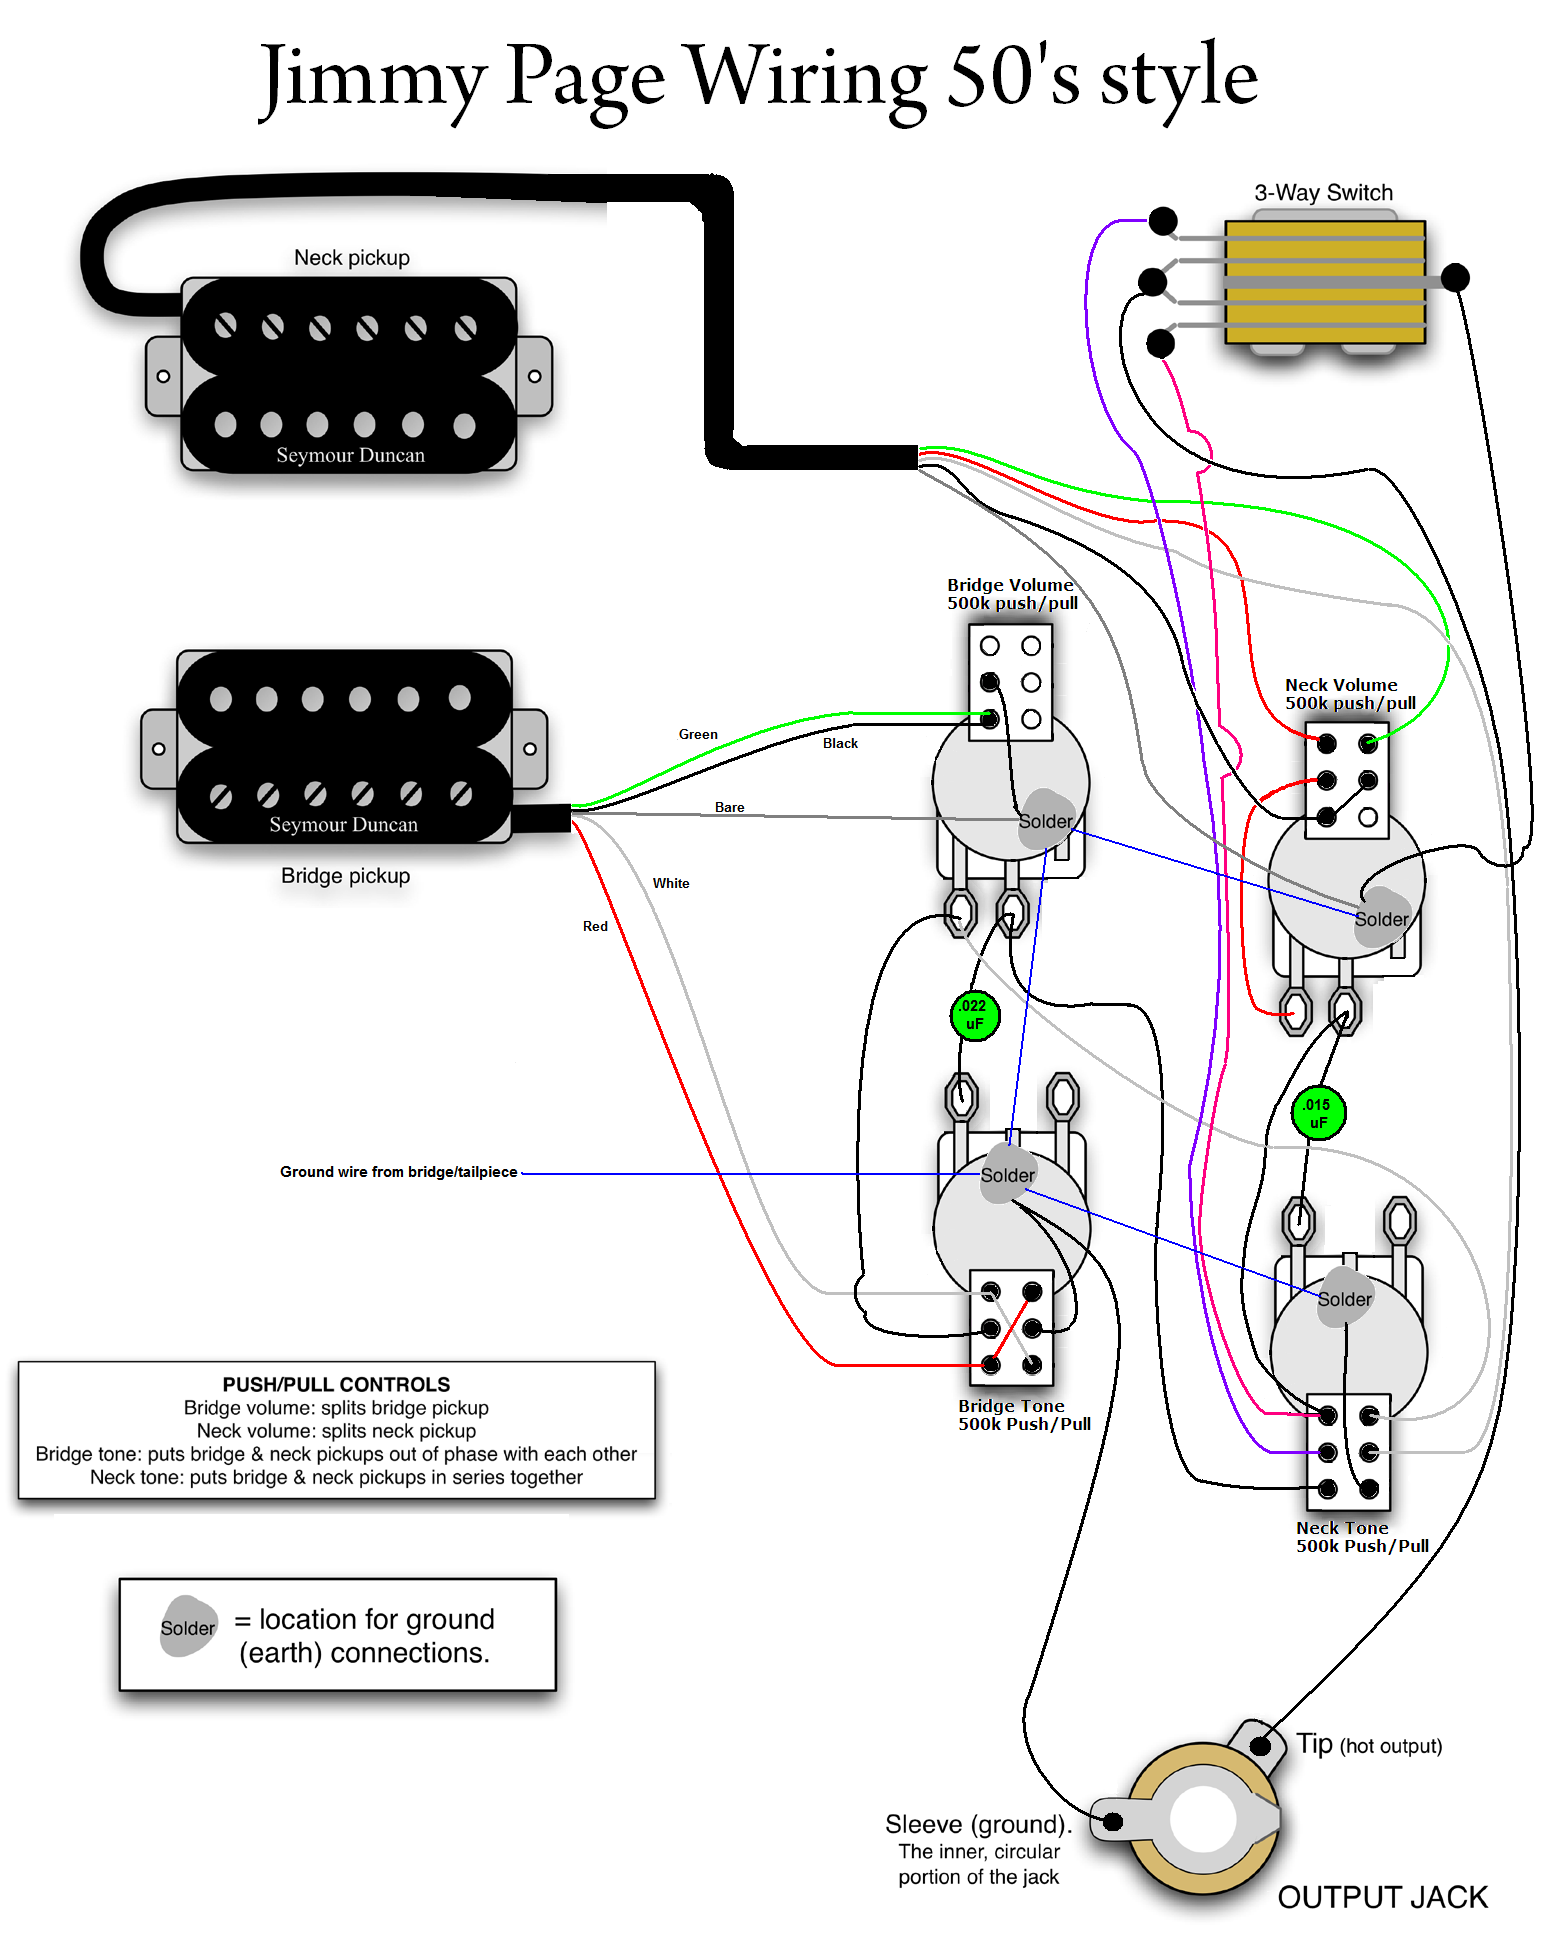 medium resolution of jimmy page 50s wiring mylespaul com instruments pinterest jimmy page stratocaster jimmy page wiring sg